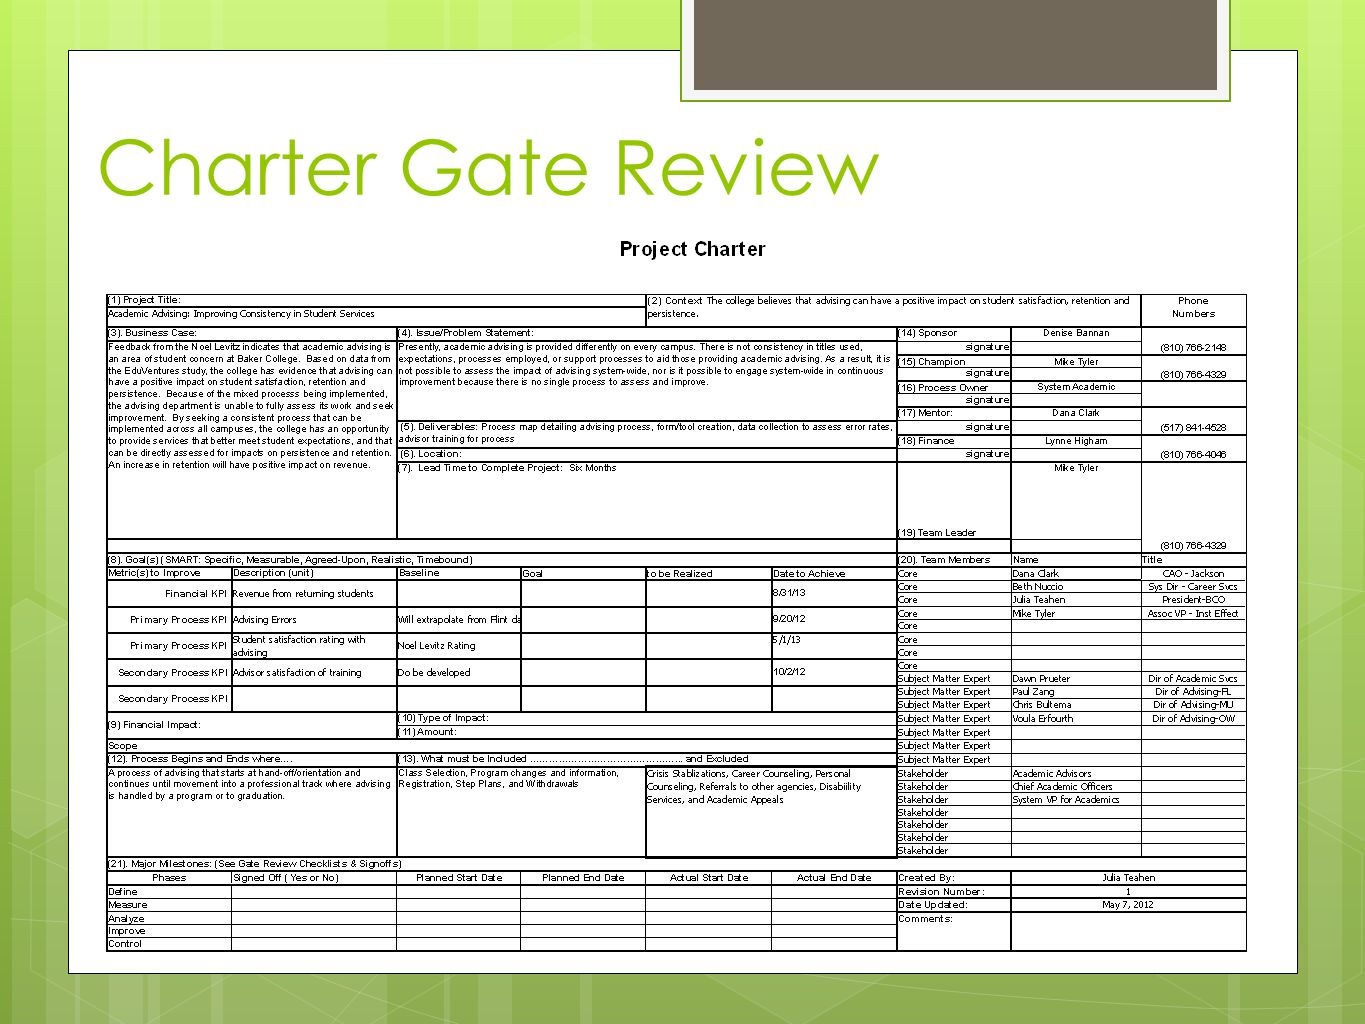 Charter Gate Review